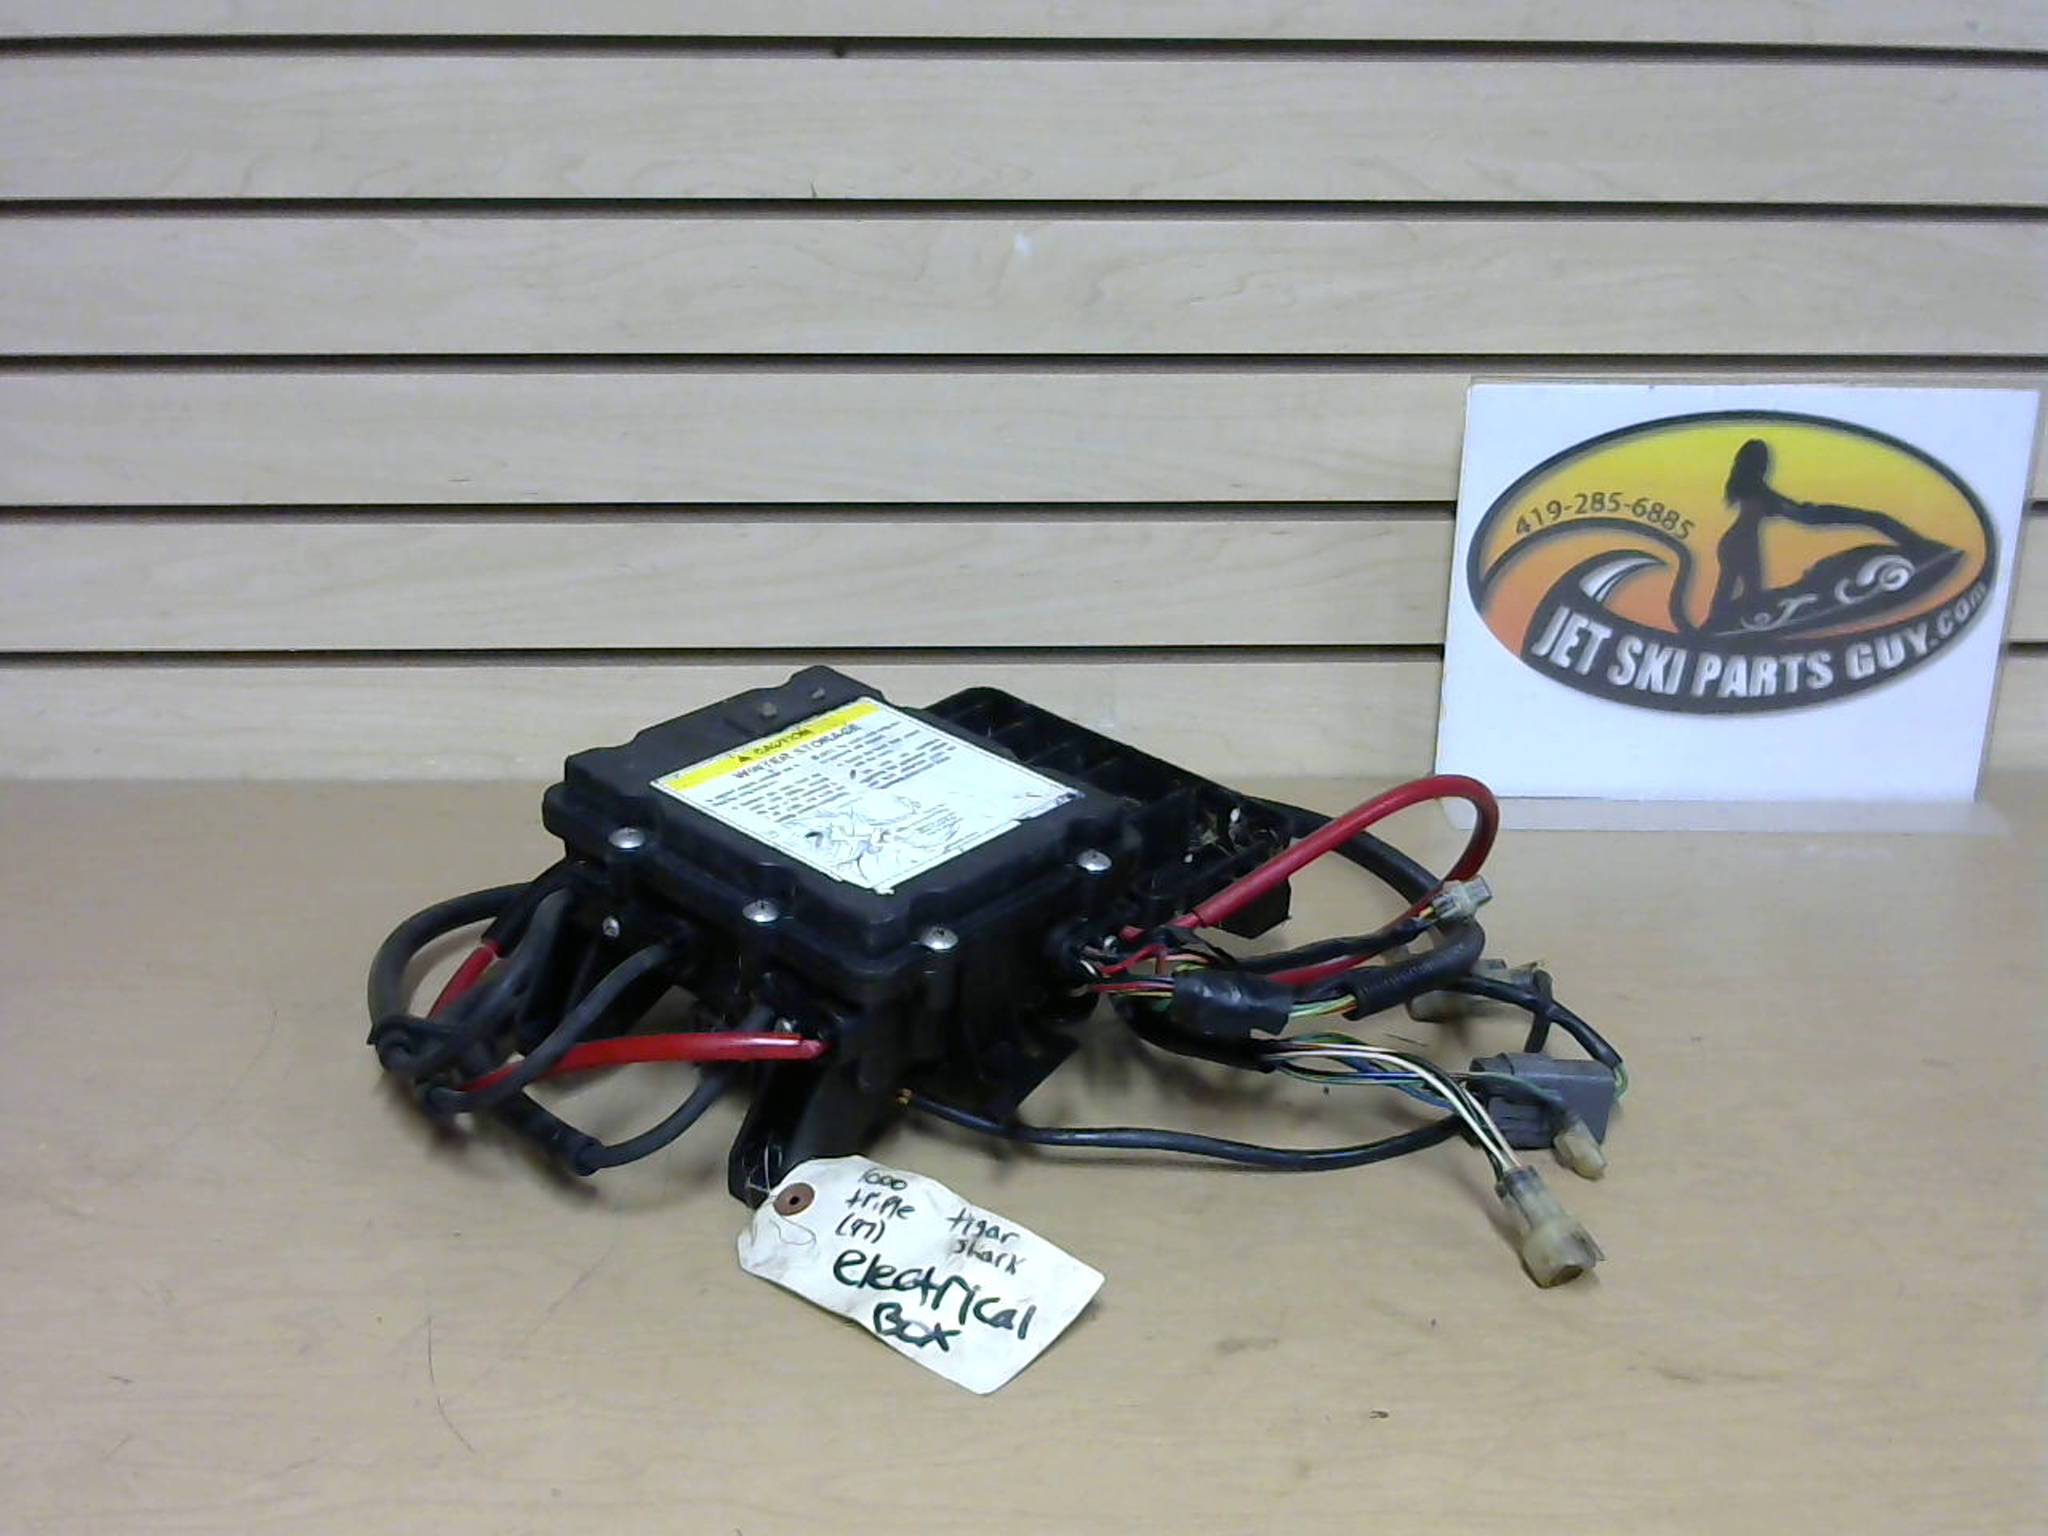 1997 Tigershark Daytona 1000 Tested OEM CDI Electrical Box Assembly 3008-281